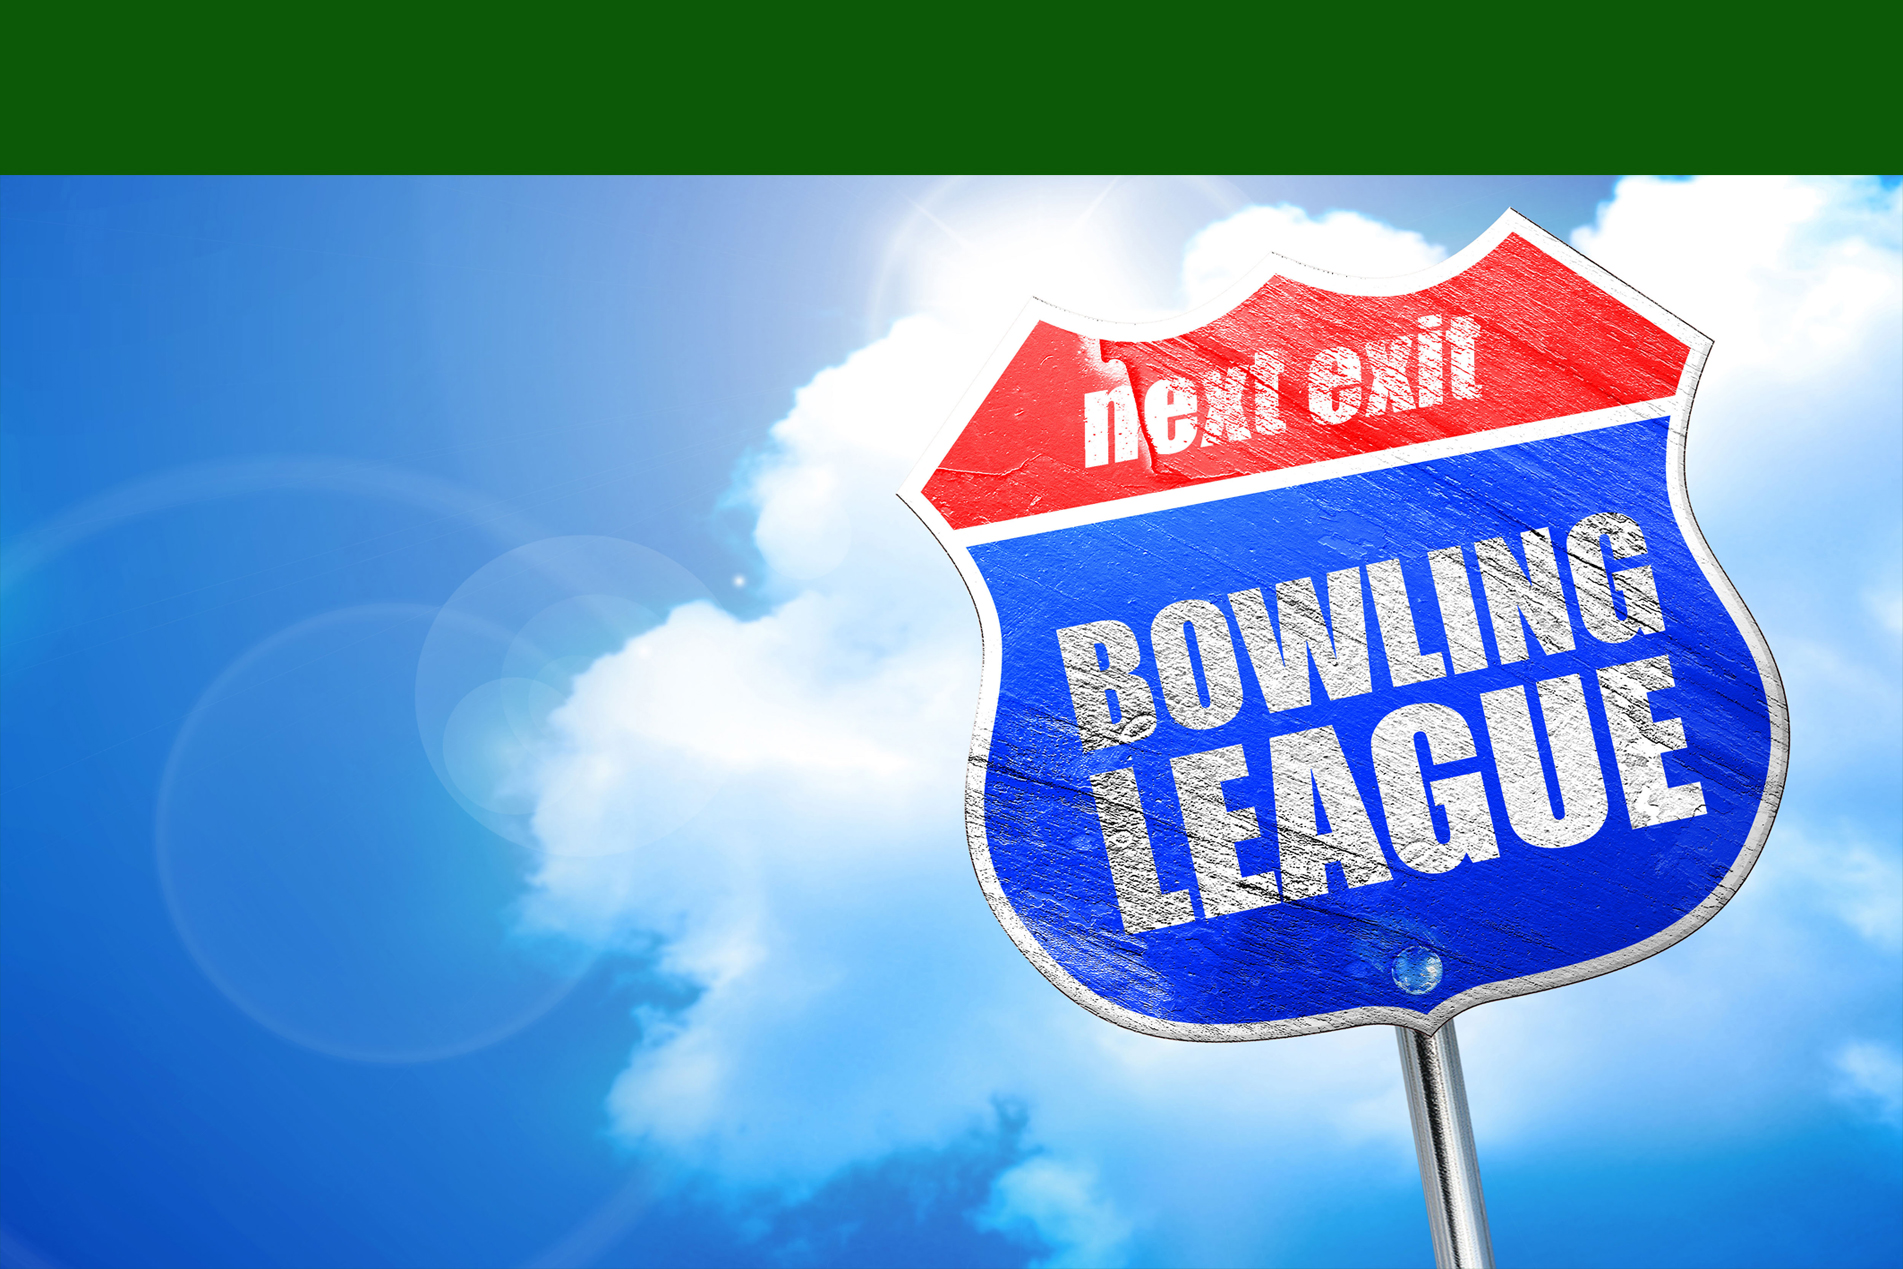 A street sign that says Bowling League